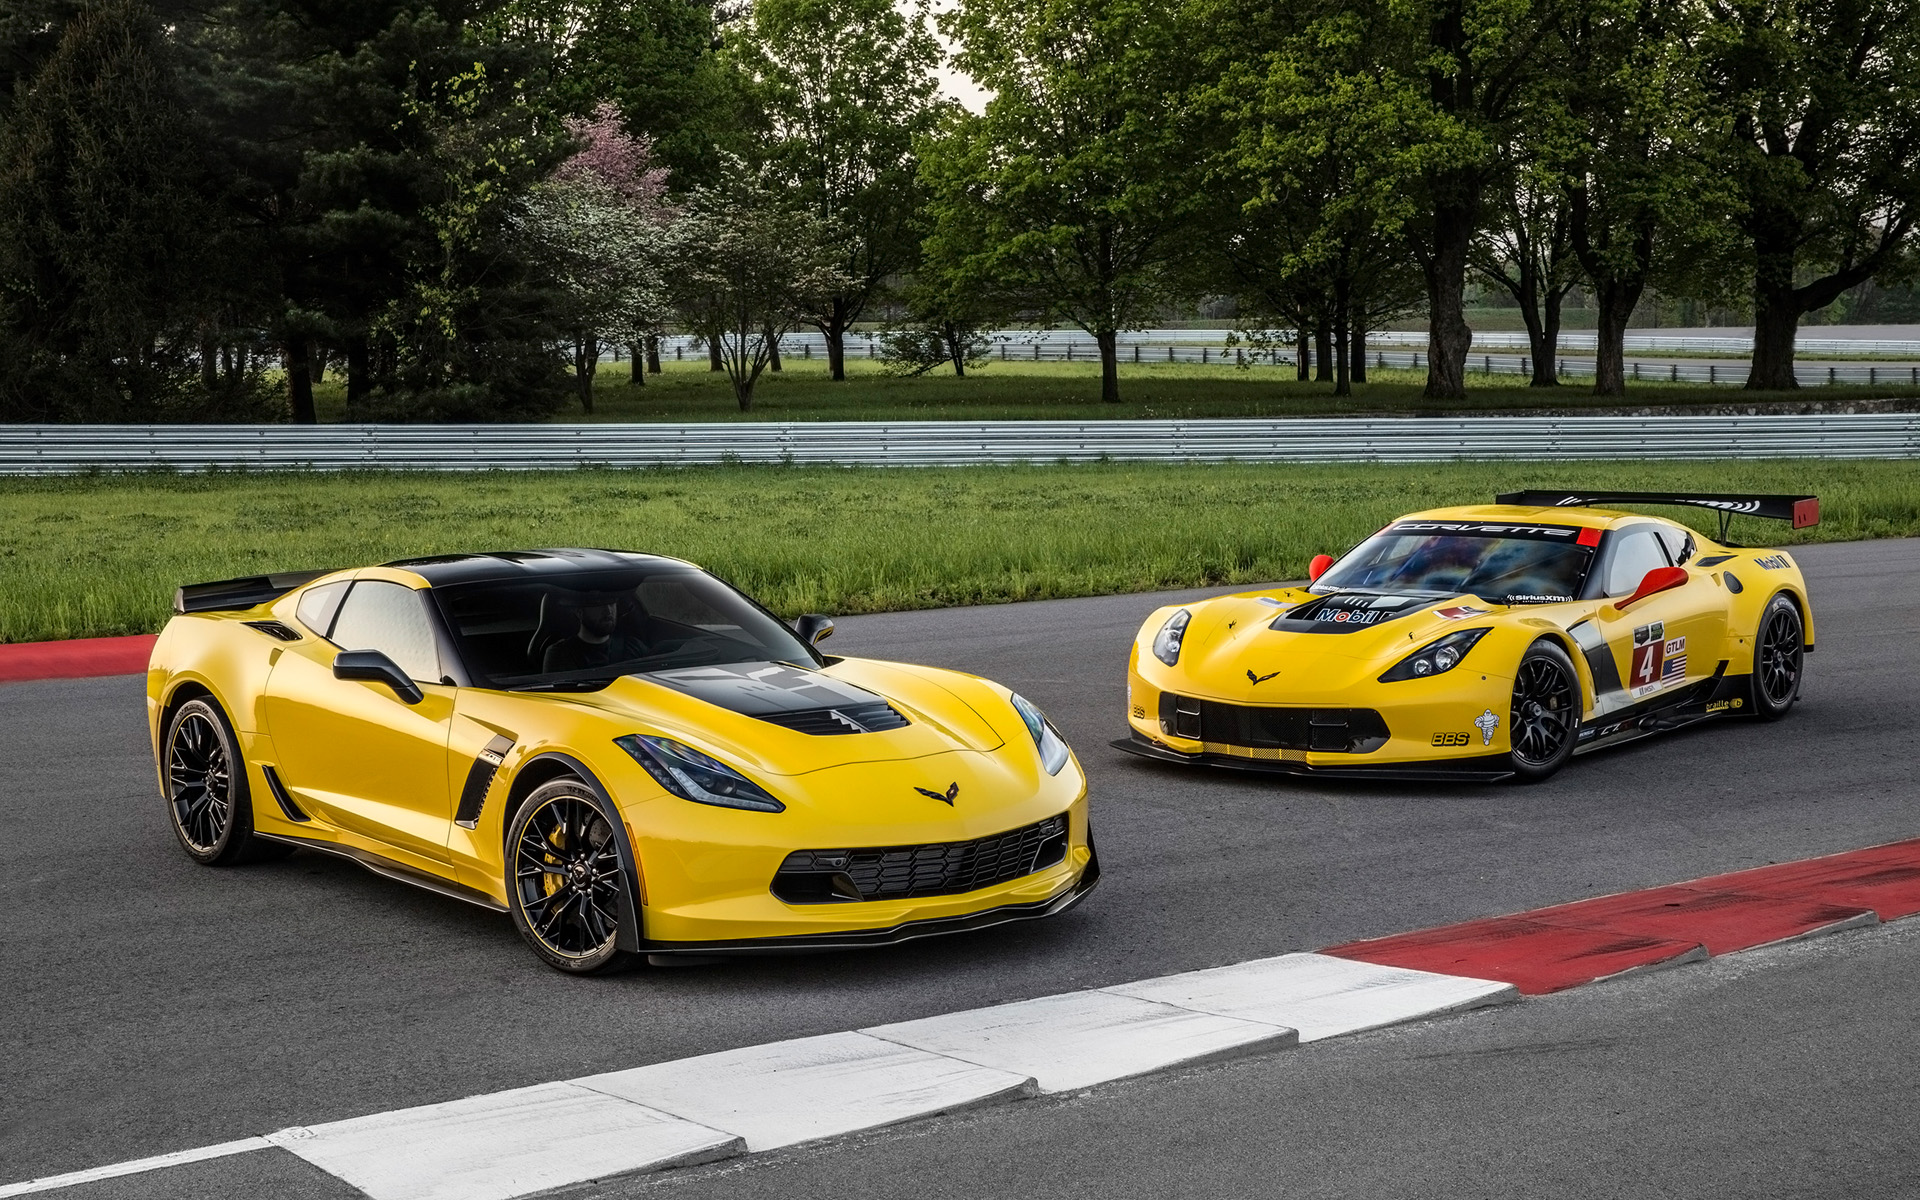 2016 Chevrolet Corvette Z06 C7R Edition   Duo   2   1920x1200 1920x1200